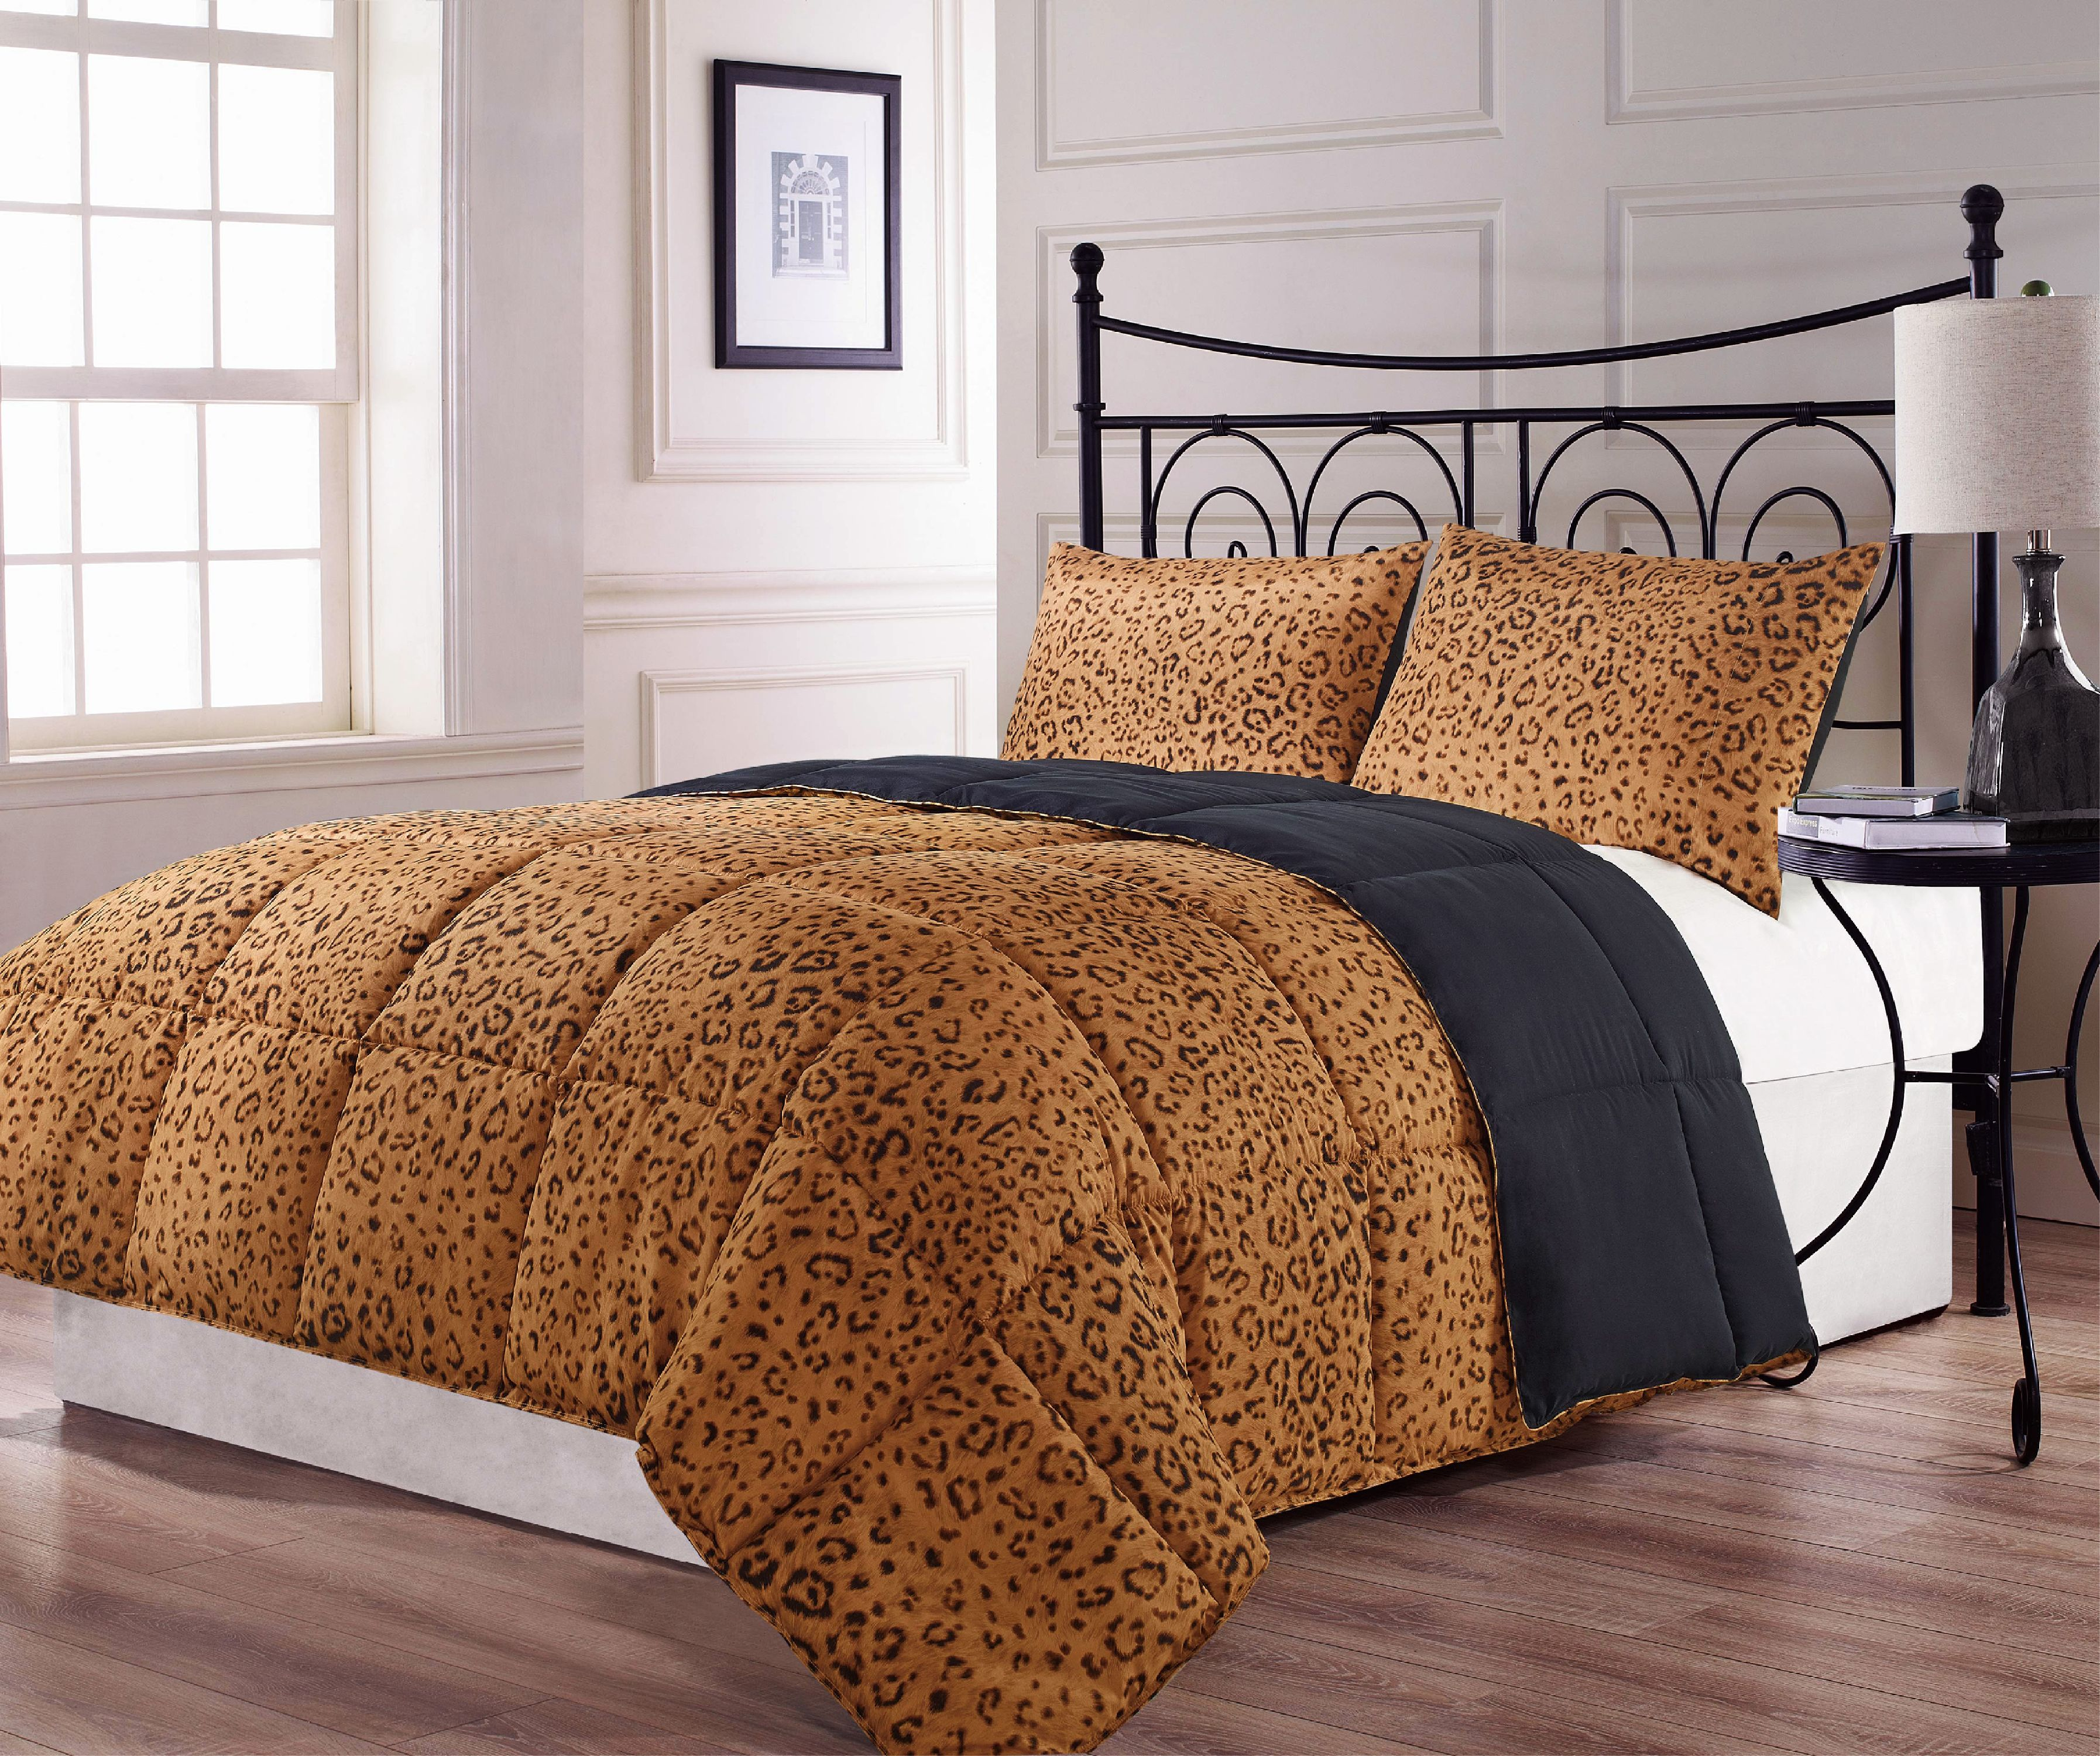 Animalia 2pc Comforter Set Twin Size Bed Reversible Down